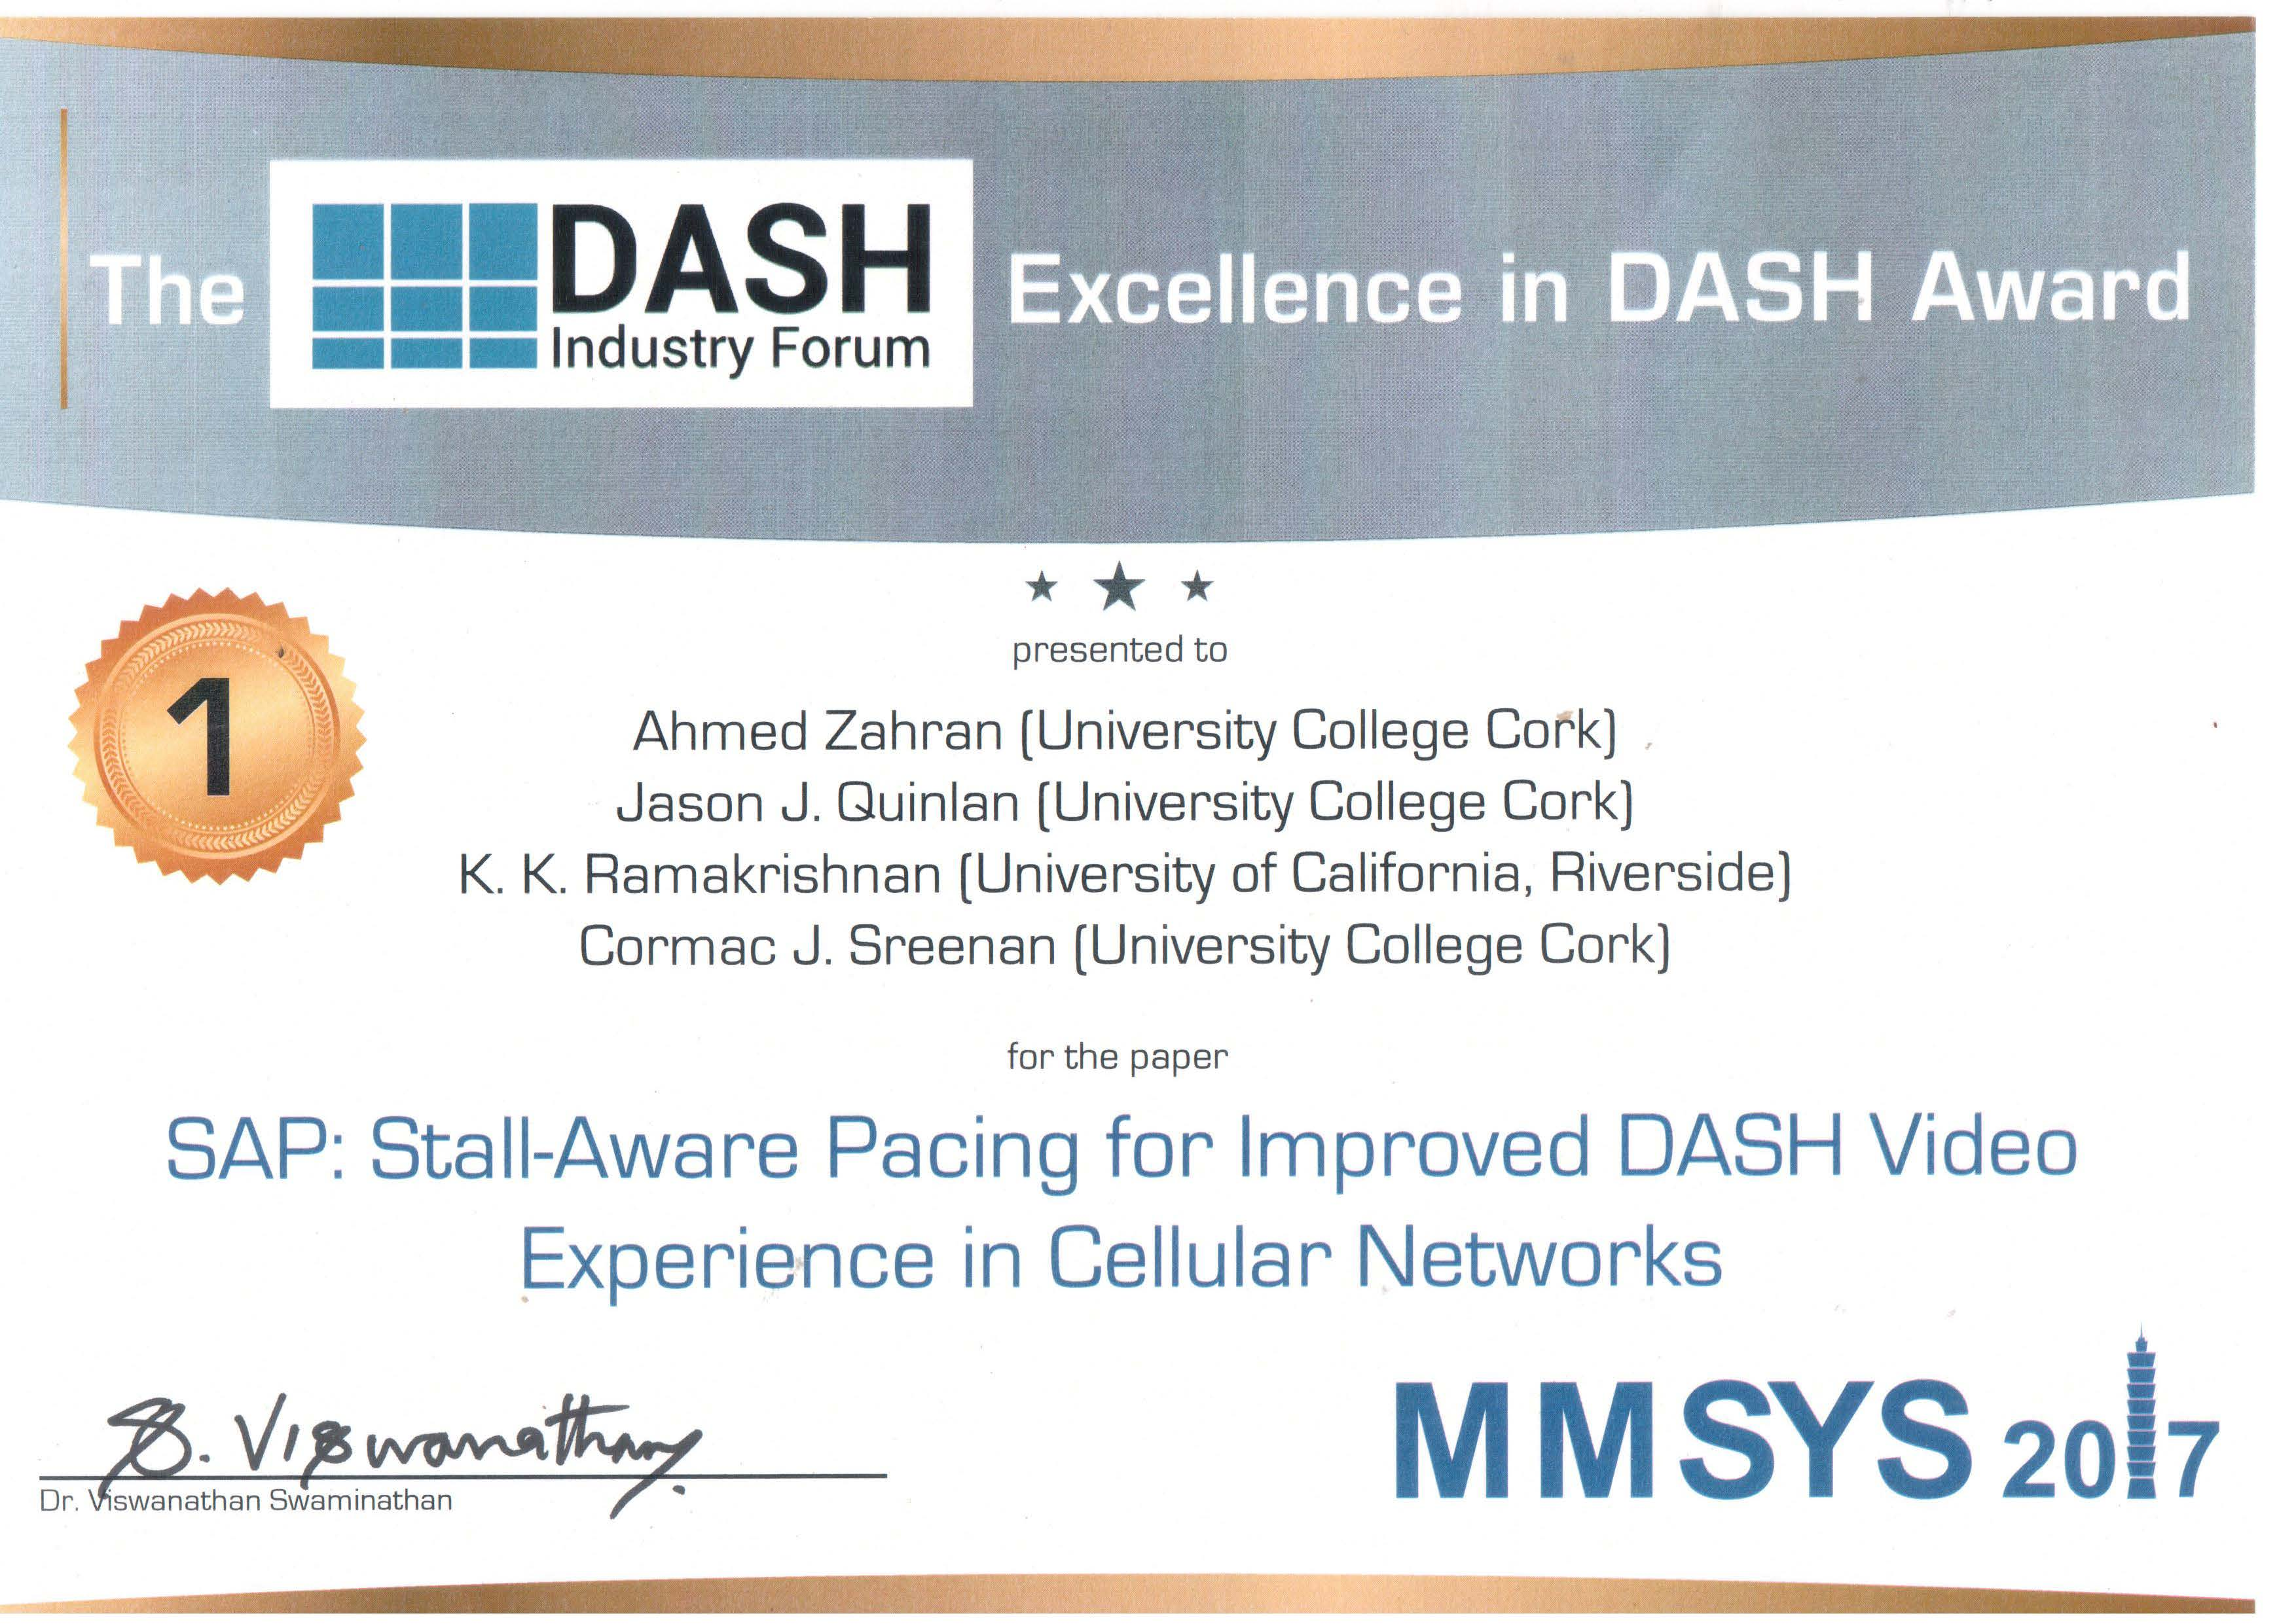 Winner of the 'Excellence in DASH Award' at ACM MMSys 2017